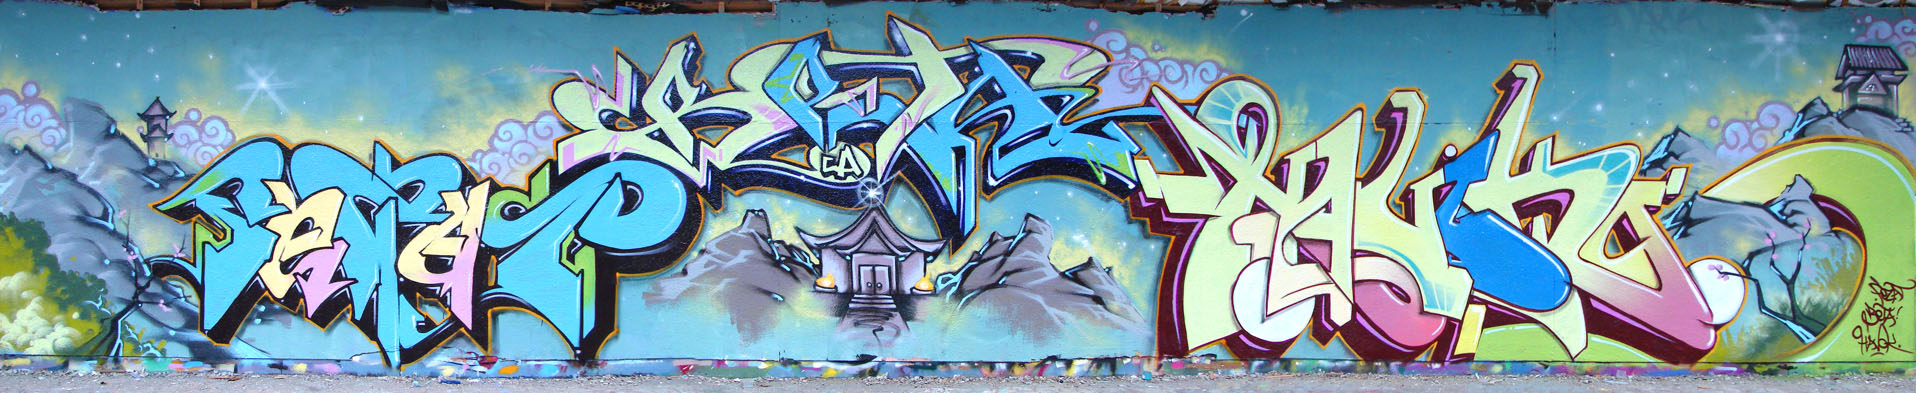 the apes at charlevoix wall by MrHavok